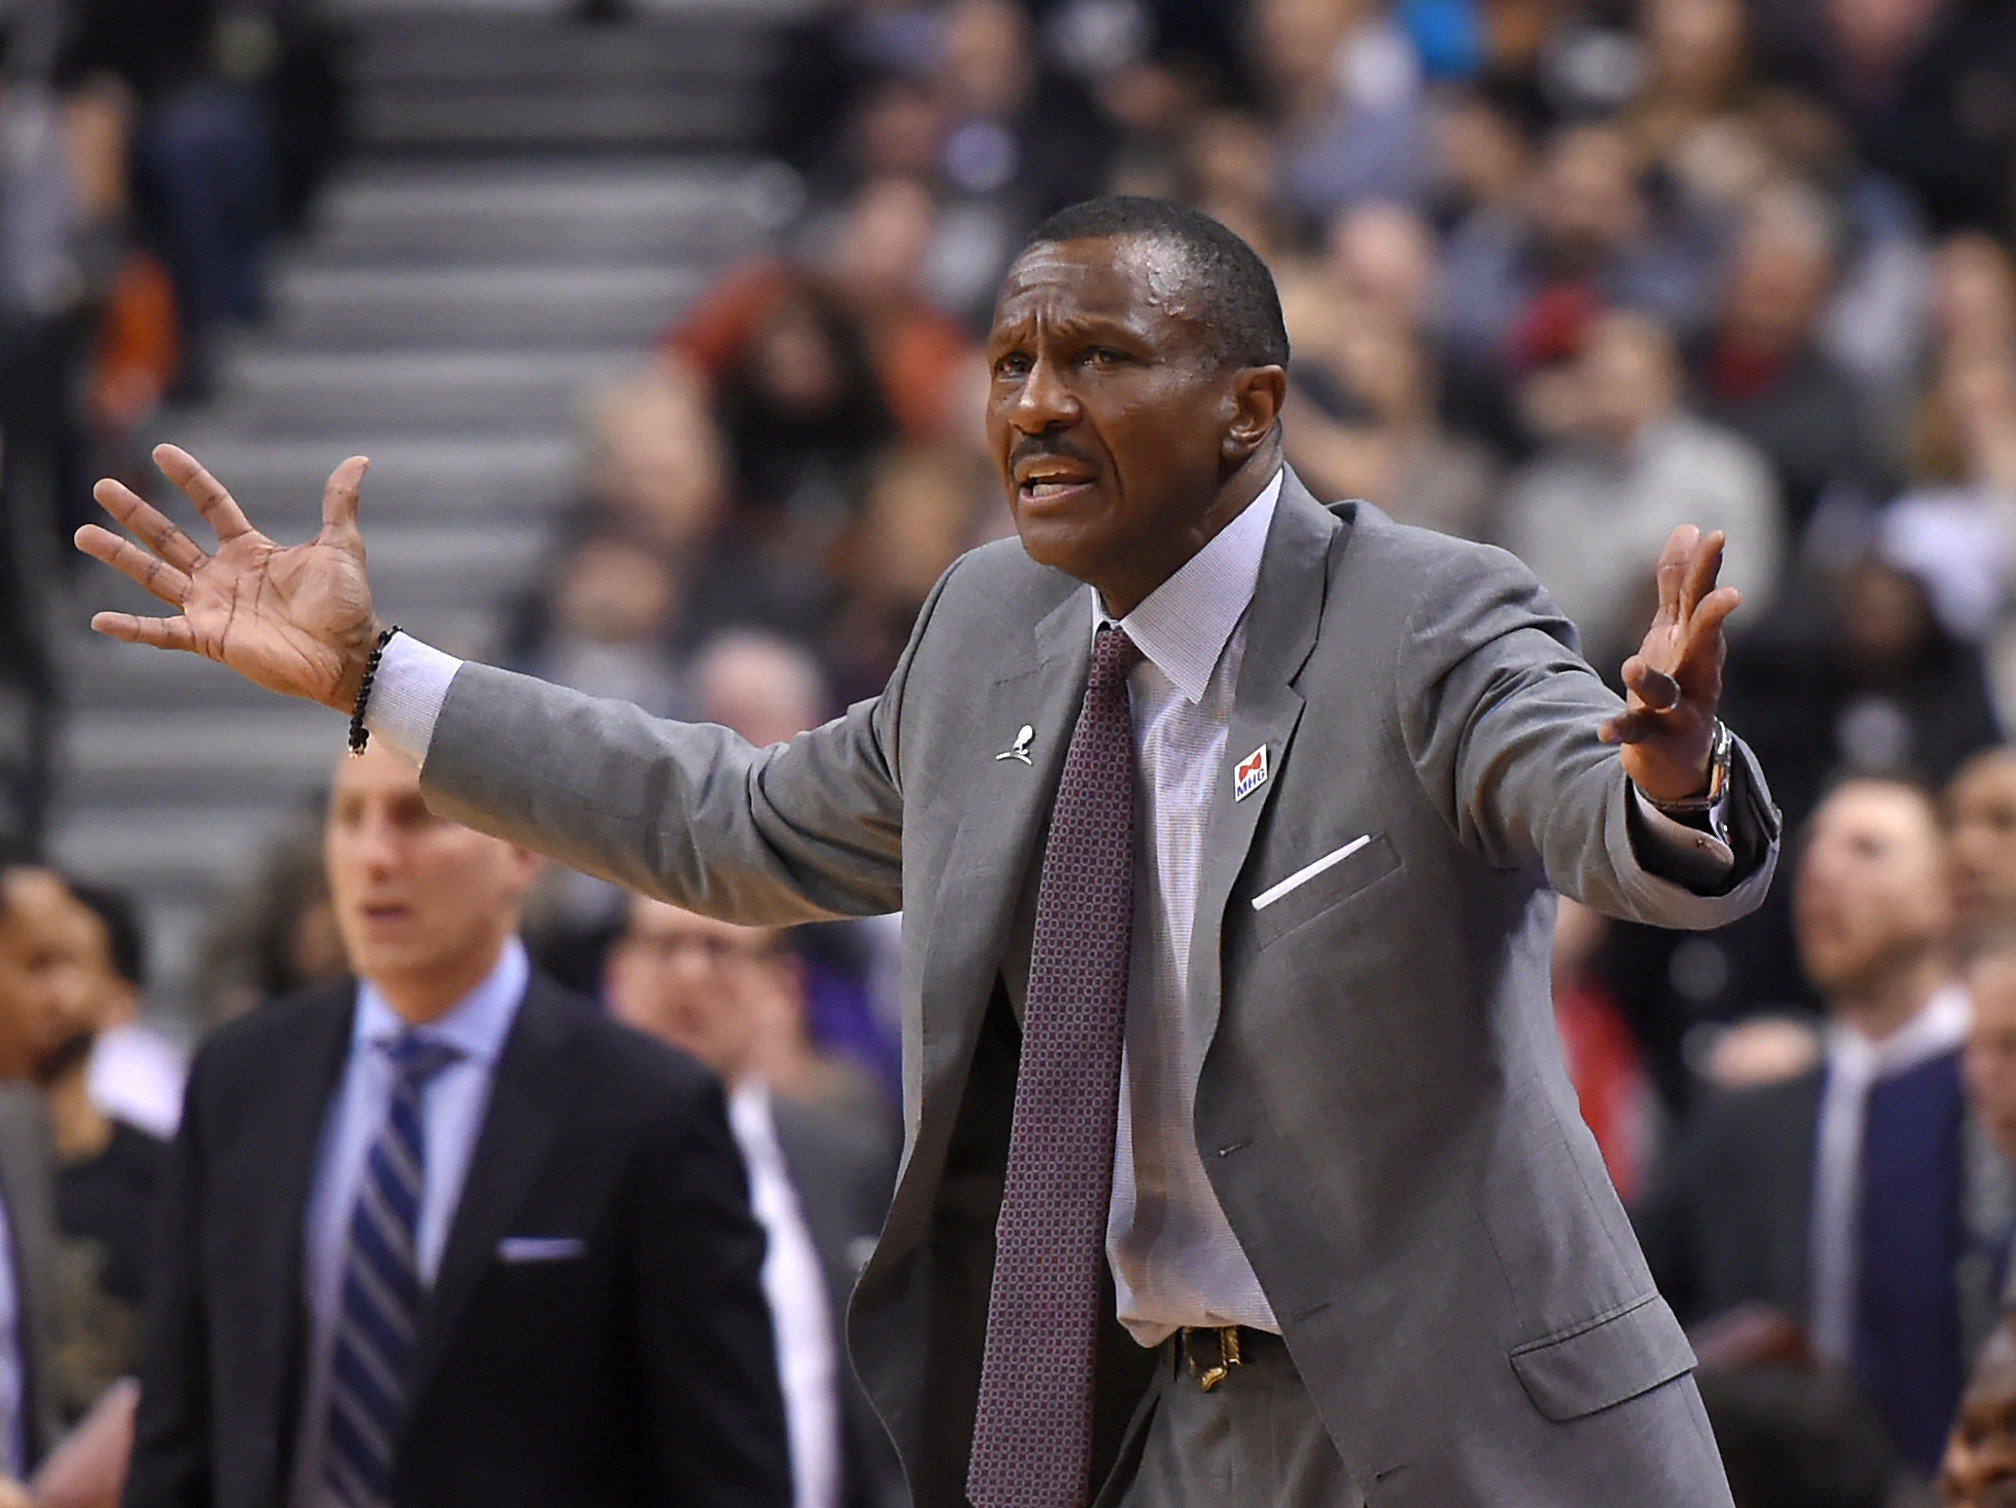 Feb 6, 2017; Toronto, Ontario, CAN; Toronto Raptors head coach Dwane Casey reacts to a call from the sidelines against the Los Angeles Clippers at Air Canada Centre. Mandatory Credit: Dan Hamilton-USA TODAY Sports